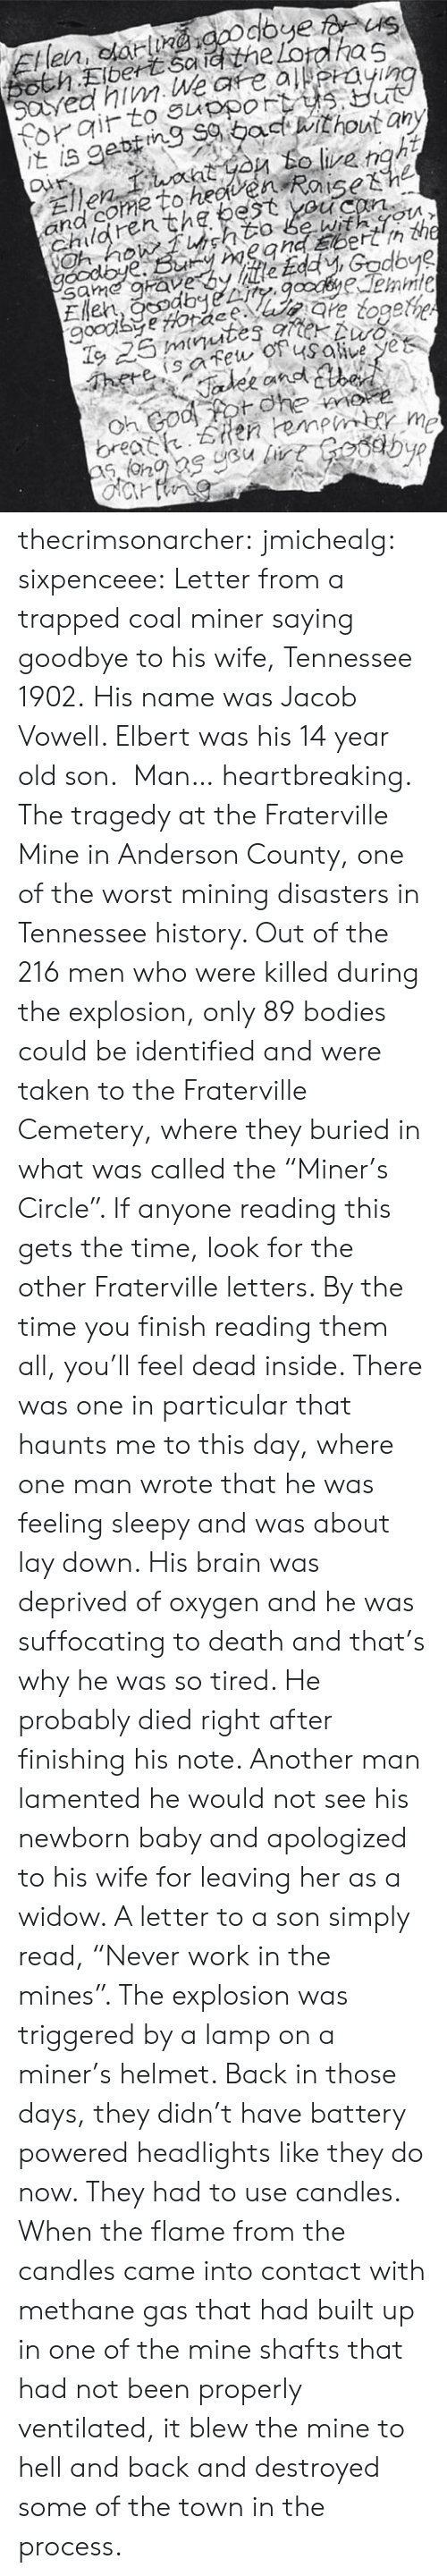 "Suffocating: and come to heoven  Chden thg bestsh2  With m  Uu? thecrimsonarcher: jmichealg:  sixpenceee:  Letter from a trapped coal miner saying goodbye to his wife, Tennessee 1902. His name was Jacob Vowell. Elbert was his 14 year old son.   Man… heartbreaking.    The tragedy at the Fraterville Mine in Anderson County, one of the worst mining disasters in Tennessee history. Out of the 216 men who were killed during the explosion, only 89 bodies could be identified and were taken to the Fraterville Cemetery, where they buried in what was called the ""Miner's Circle"". If anyone reading this gets the time, look for the other Fraterville letters. By the time you finish reading them all, you'll feel dead inside. There was one in particular that haunts me to this day, where one man wrote that he was feeling sleepy and was about lay down. His brain was deprived of oxygen and he was suffocating to death and that's why he was so tired. He probably died right after finishing his note. Another man lamented he would not see his newborn baby and apologized to his wife for leaving her as a widow. A letter to a son simply read, ""Never work in the mines"".   The explosion was triggered by a lamp on a miner's helmet. Back in those days, they didn't have battery powered headlights like they do now. They had to use candles. When the flame from the candles came into contact with methane gas that had built up in one of the mine shafts that had not been properly ventilated, it blew the mine to hell and back and destroyed some of the town in the process."